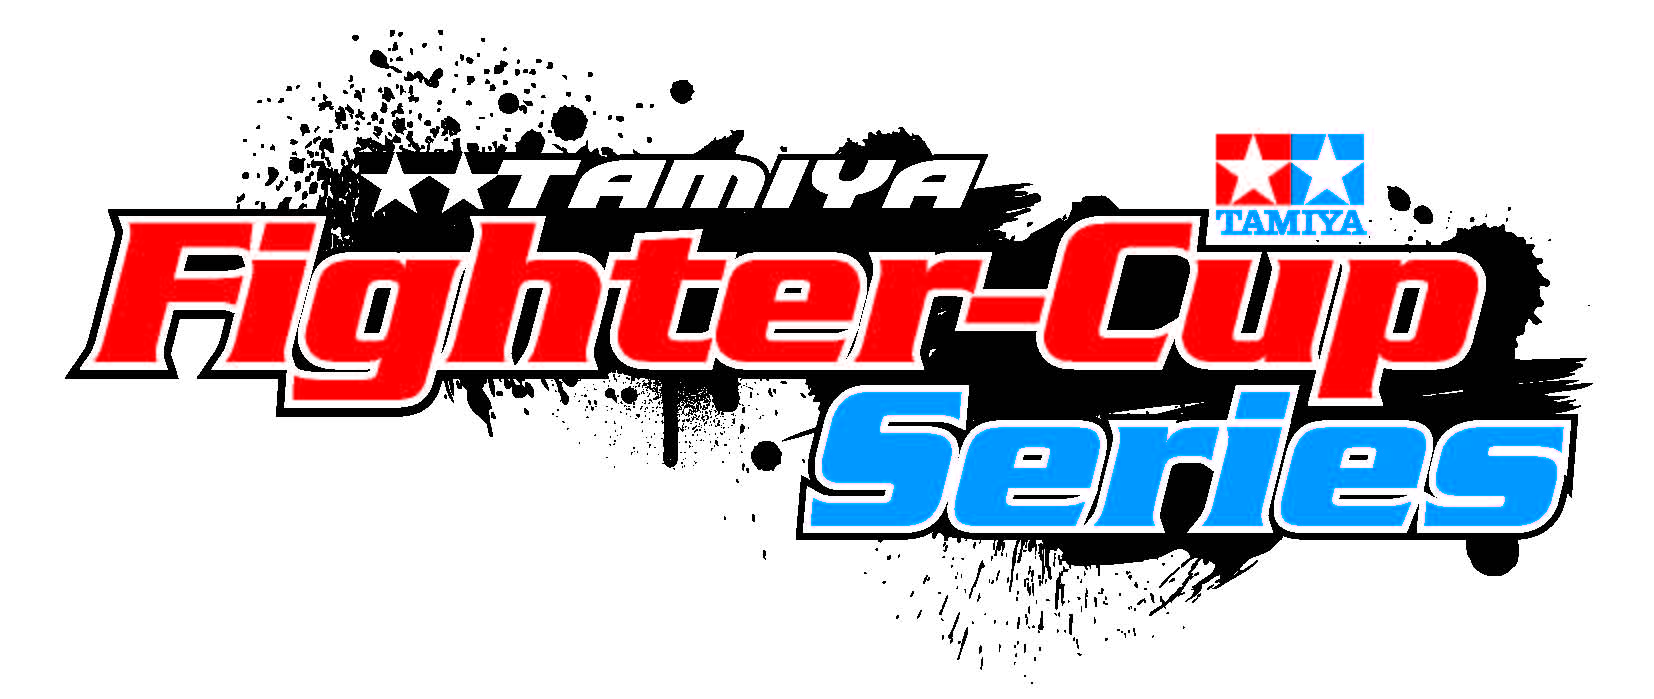 Tamiya_Fighter-Cup_Logo_2014_grossC611FzEKSdDfb